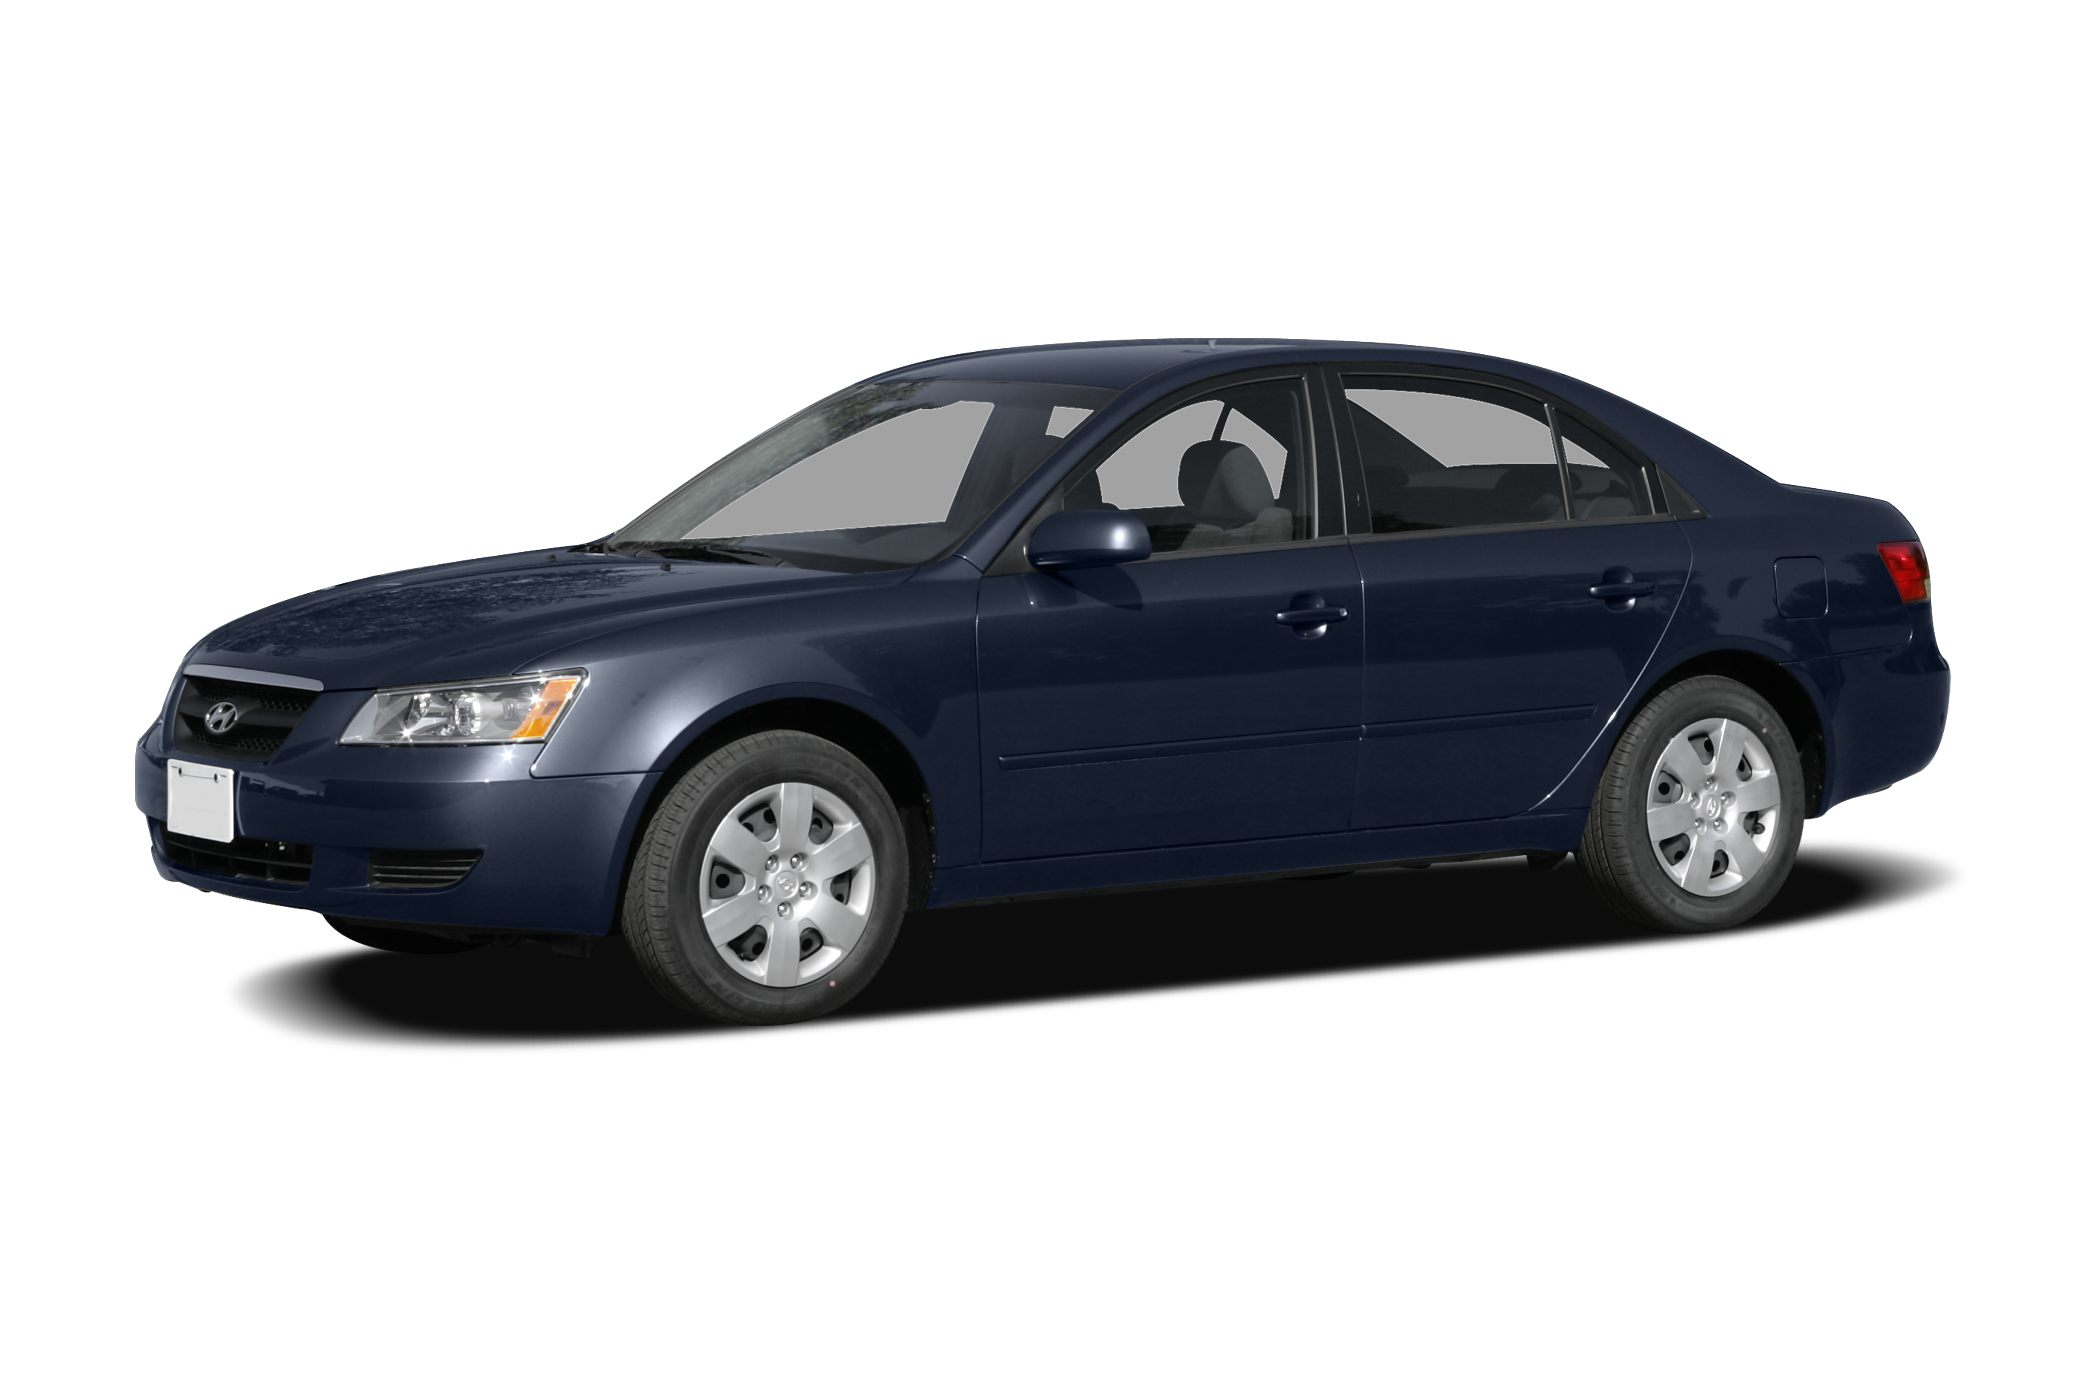 2007 Hyundai Sonata  Lifetime Engine Warranty at NO CHARGE on all pre-owned vehicles Courtesy Auto